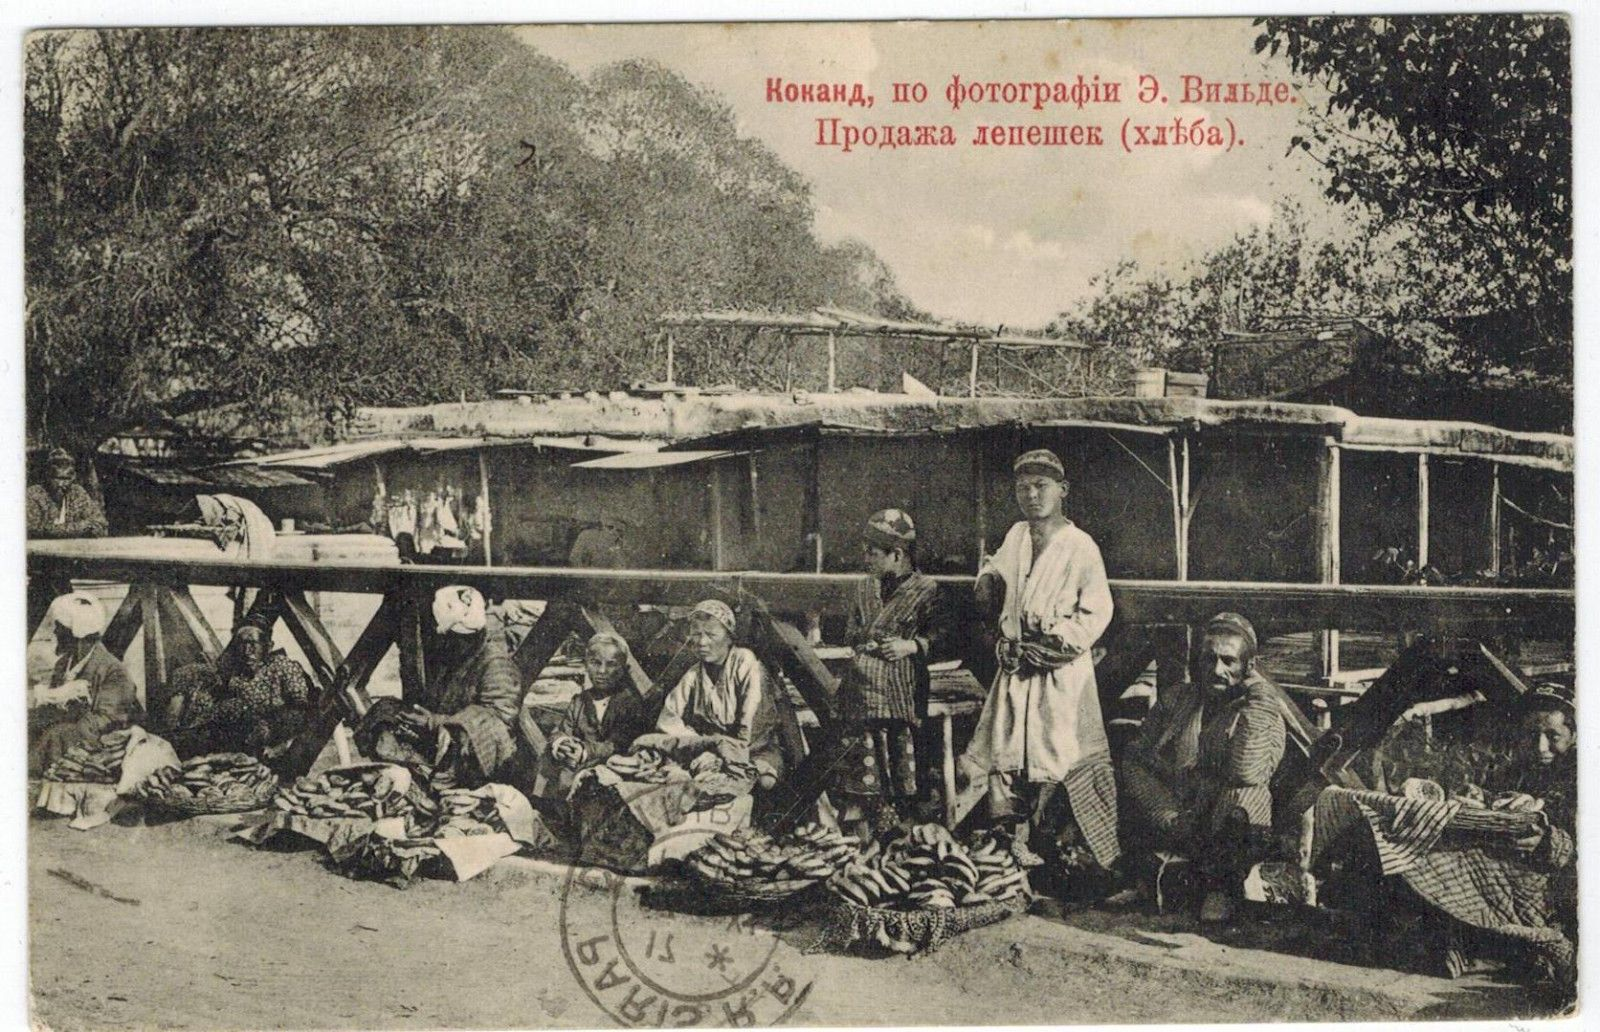 Bread and Bakery Sellers in Kokand Russian Asia 1910s